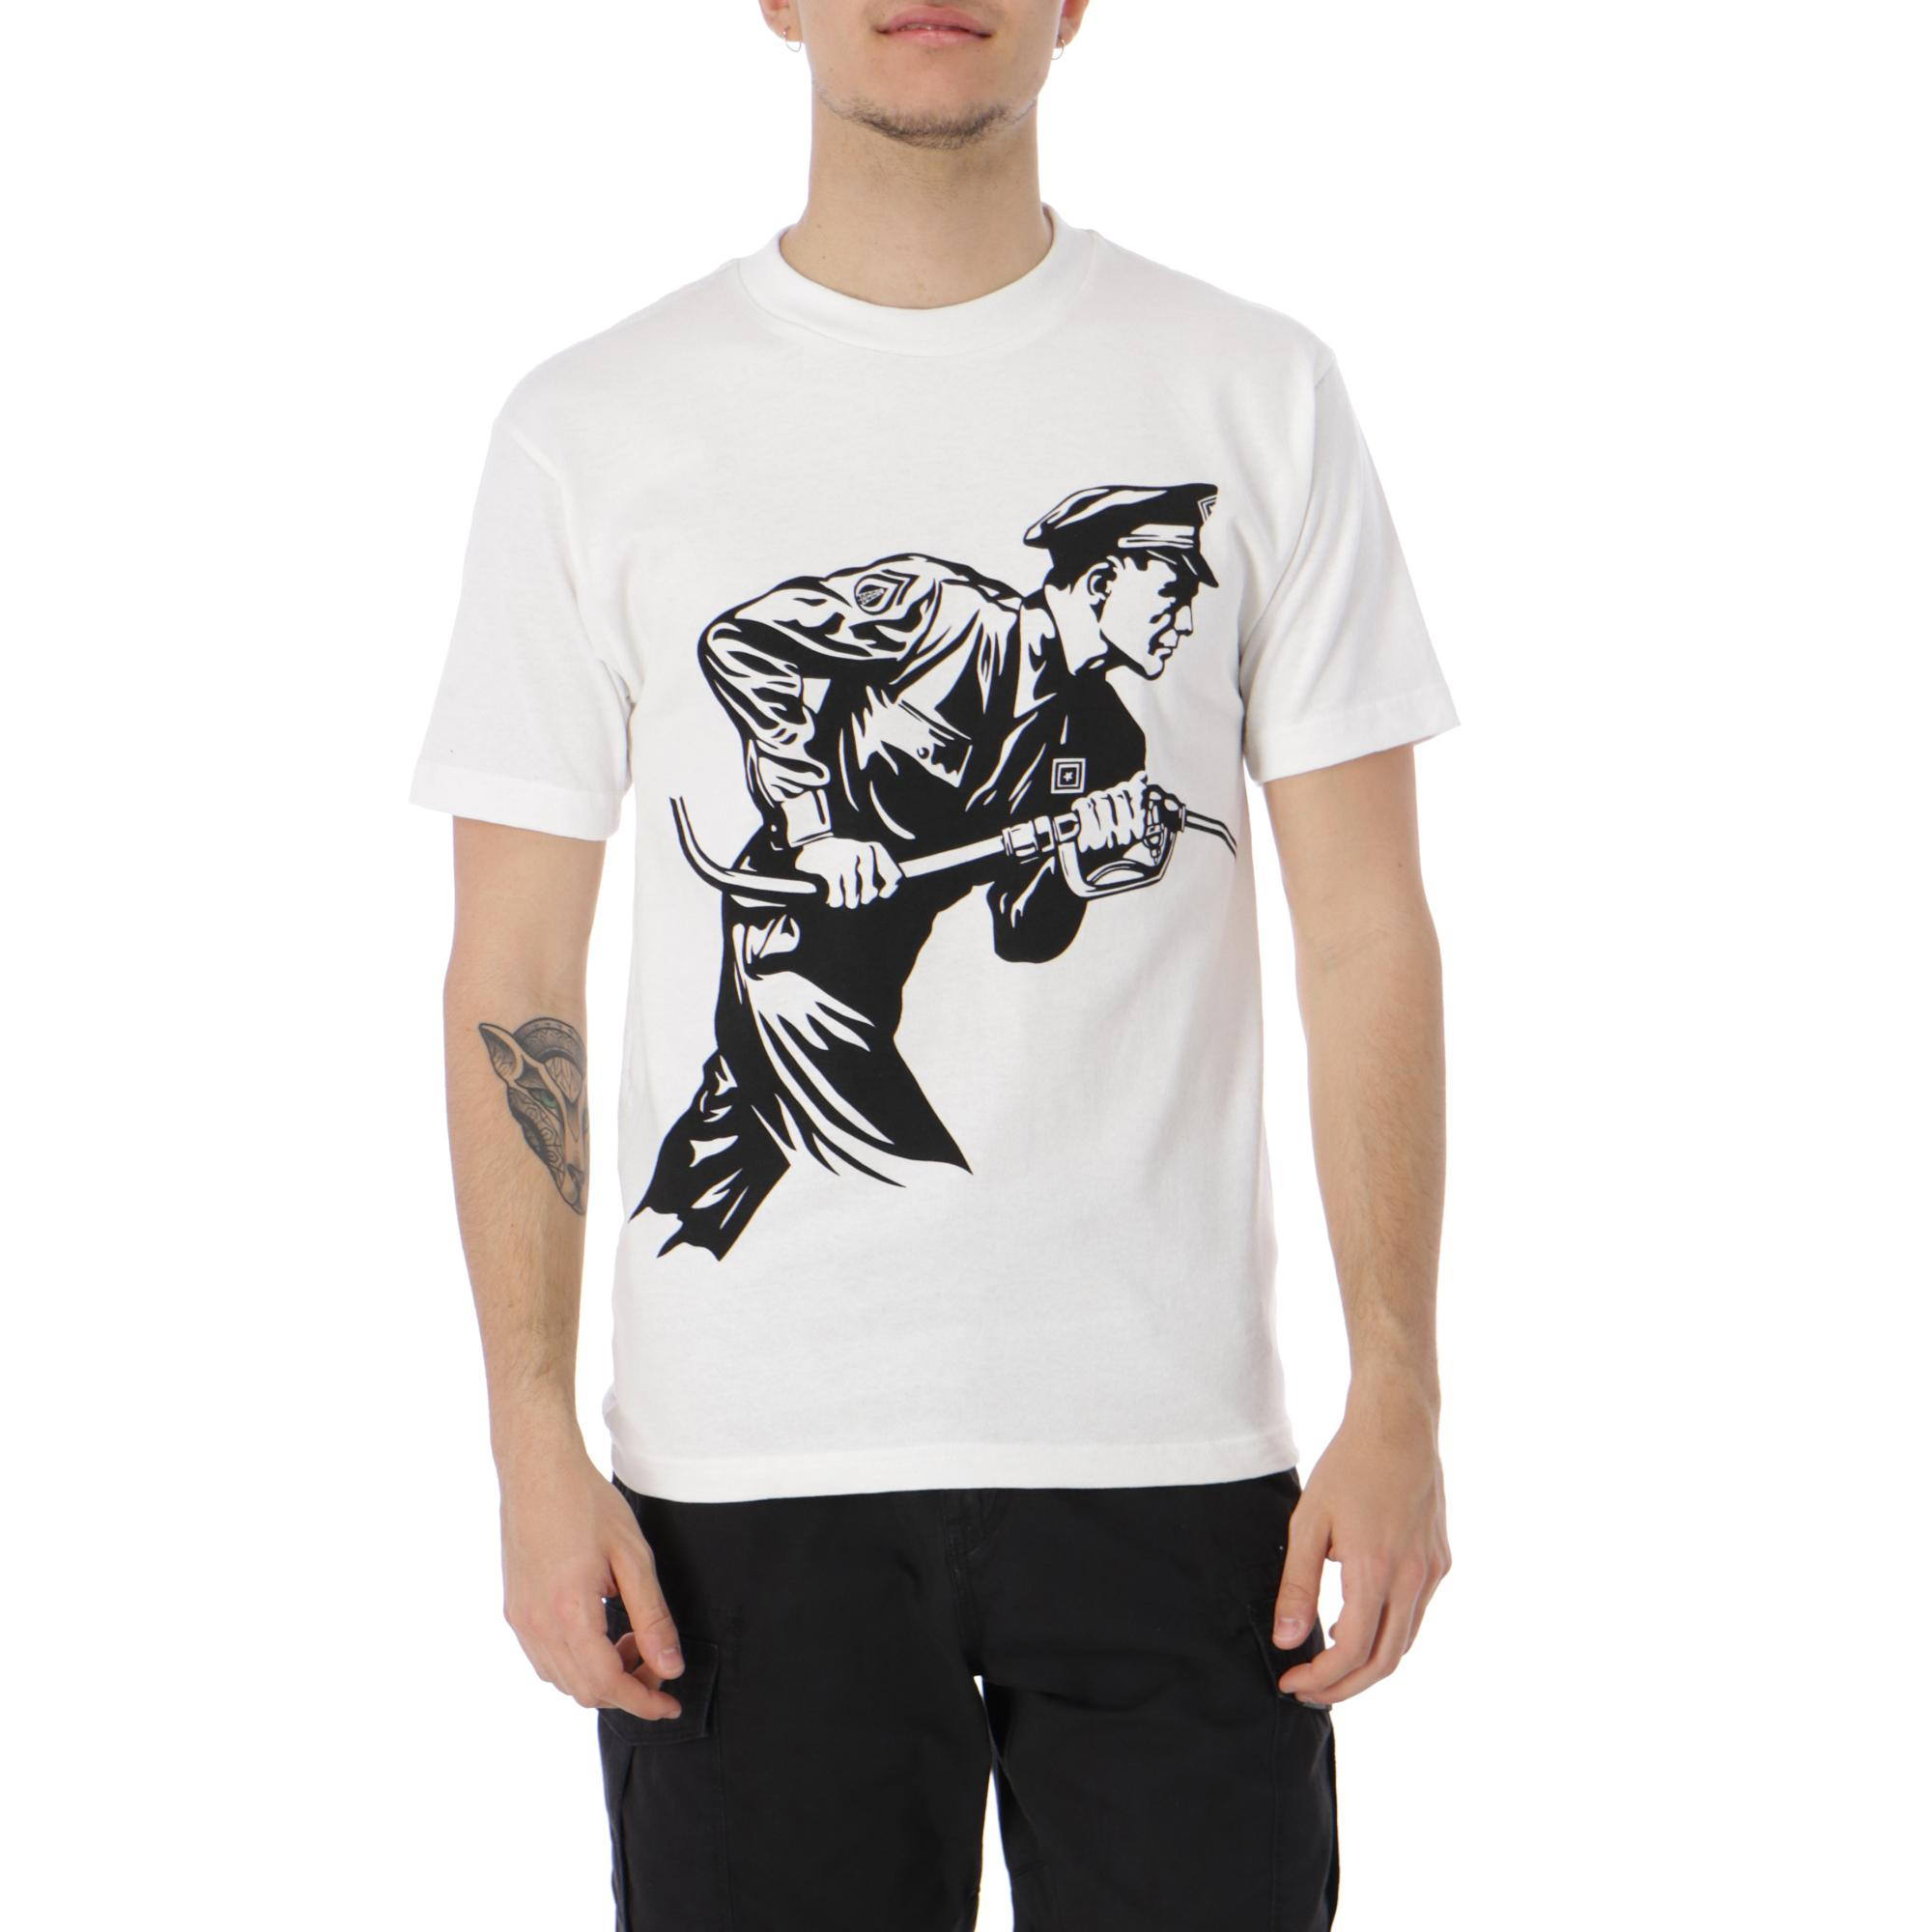 Obey Never Stop Charcing Recycled Tee WHITE